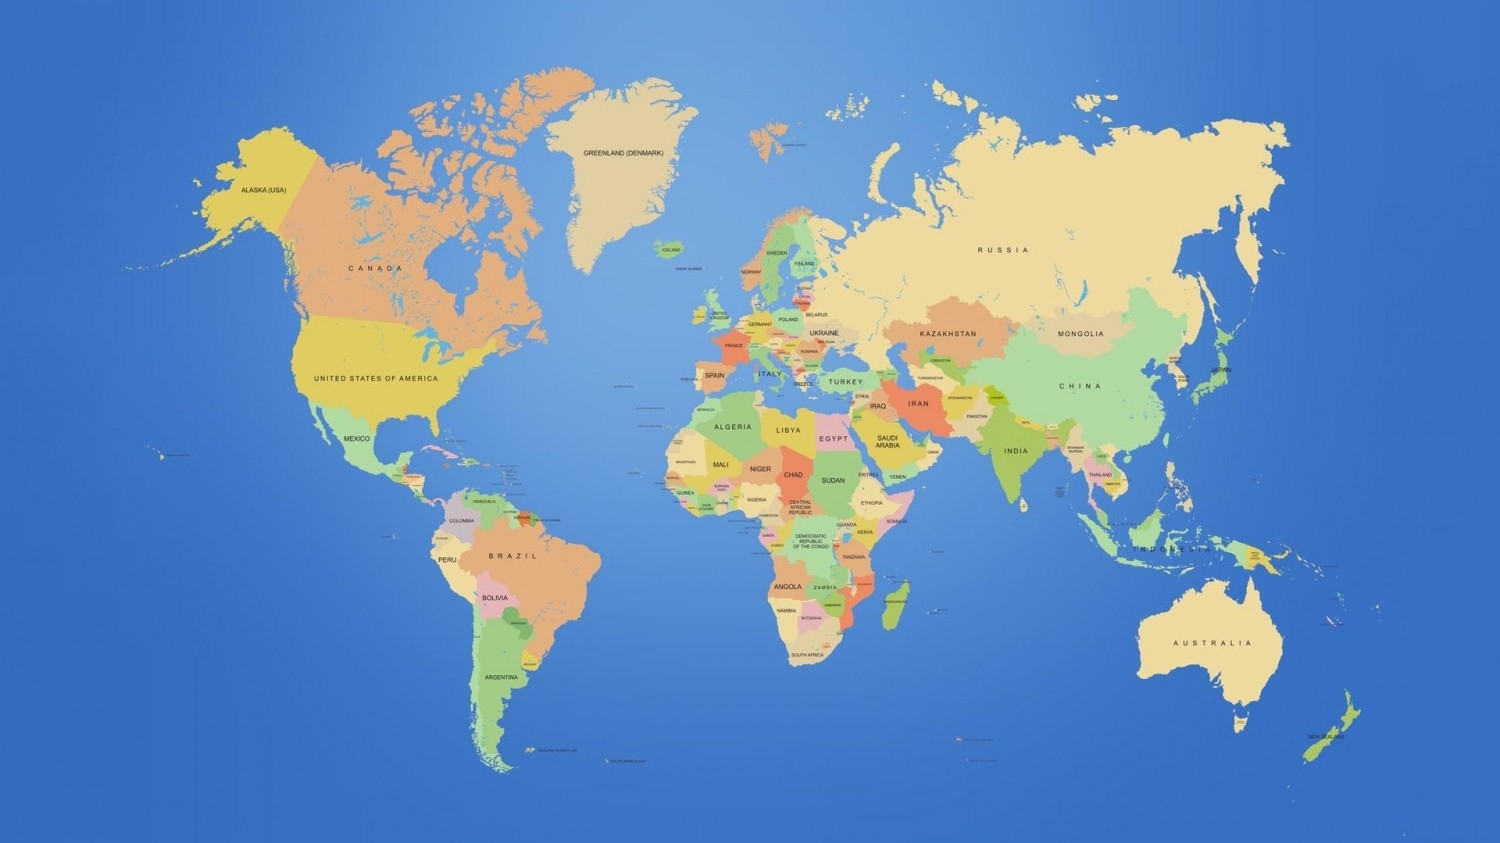 worldmap: worldmap photos, wallpapers, galleries, full hd